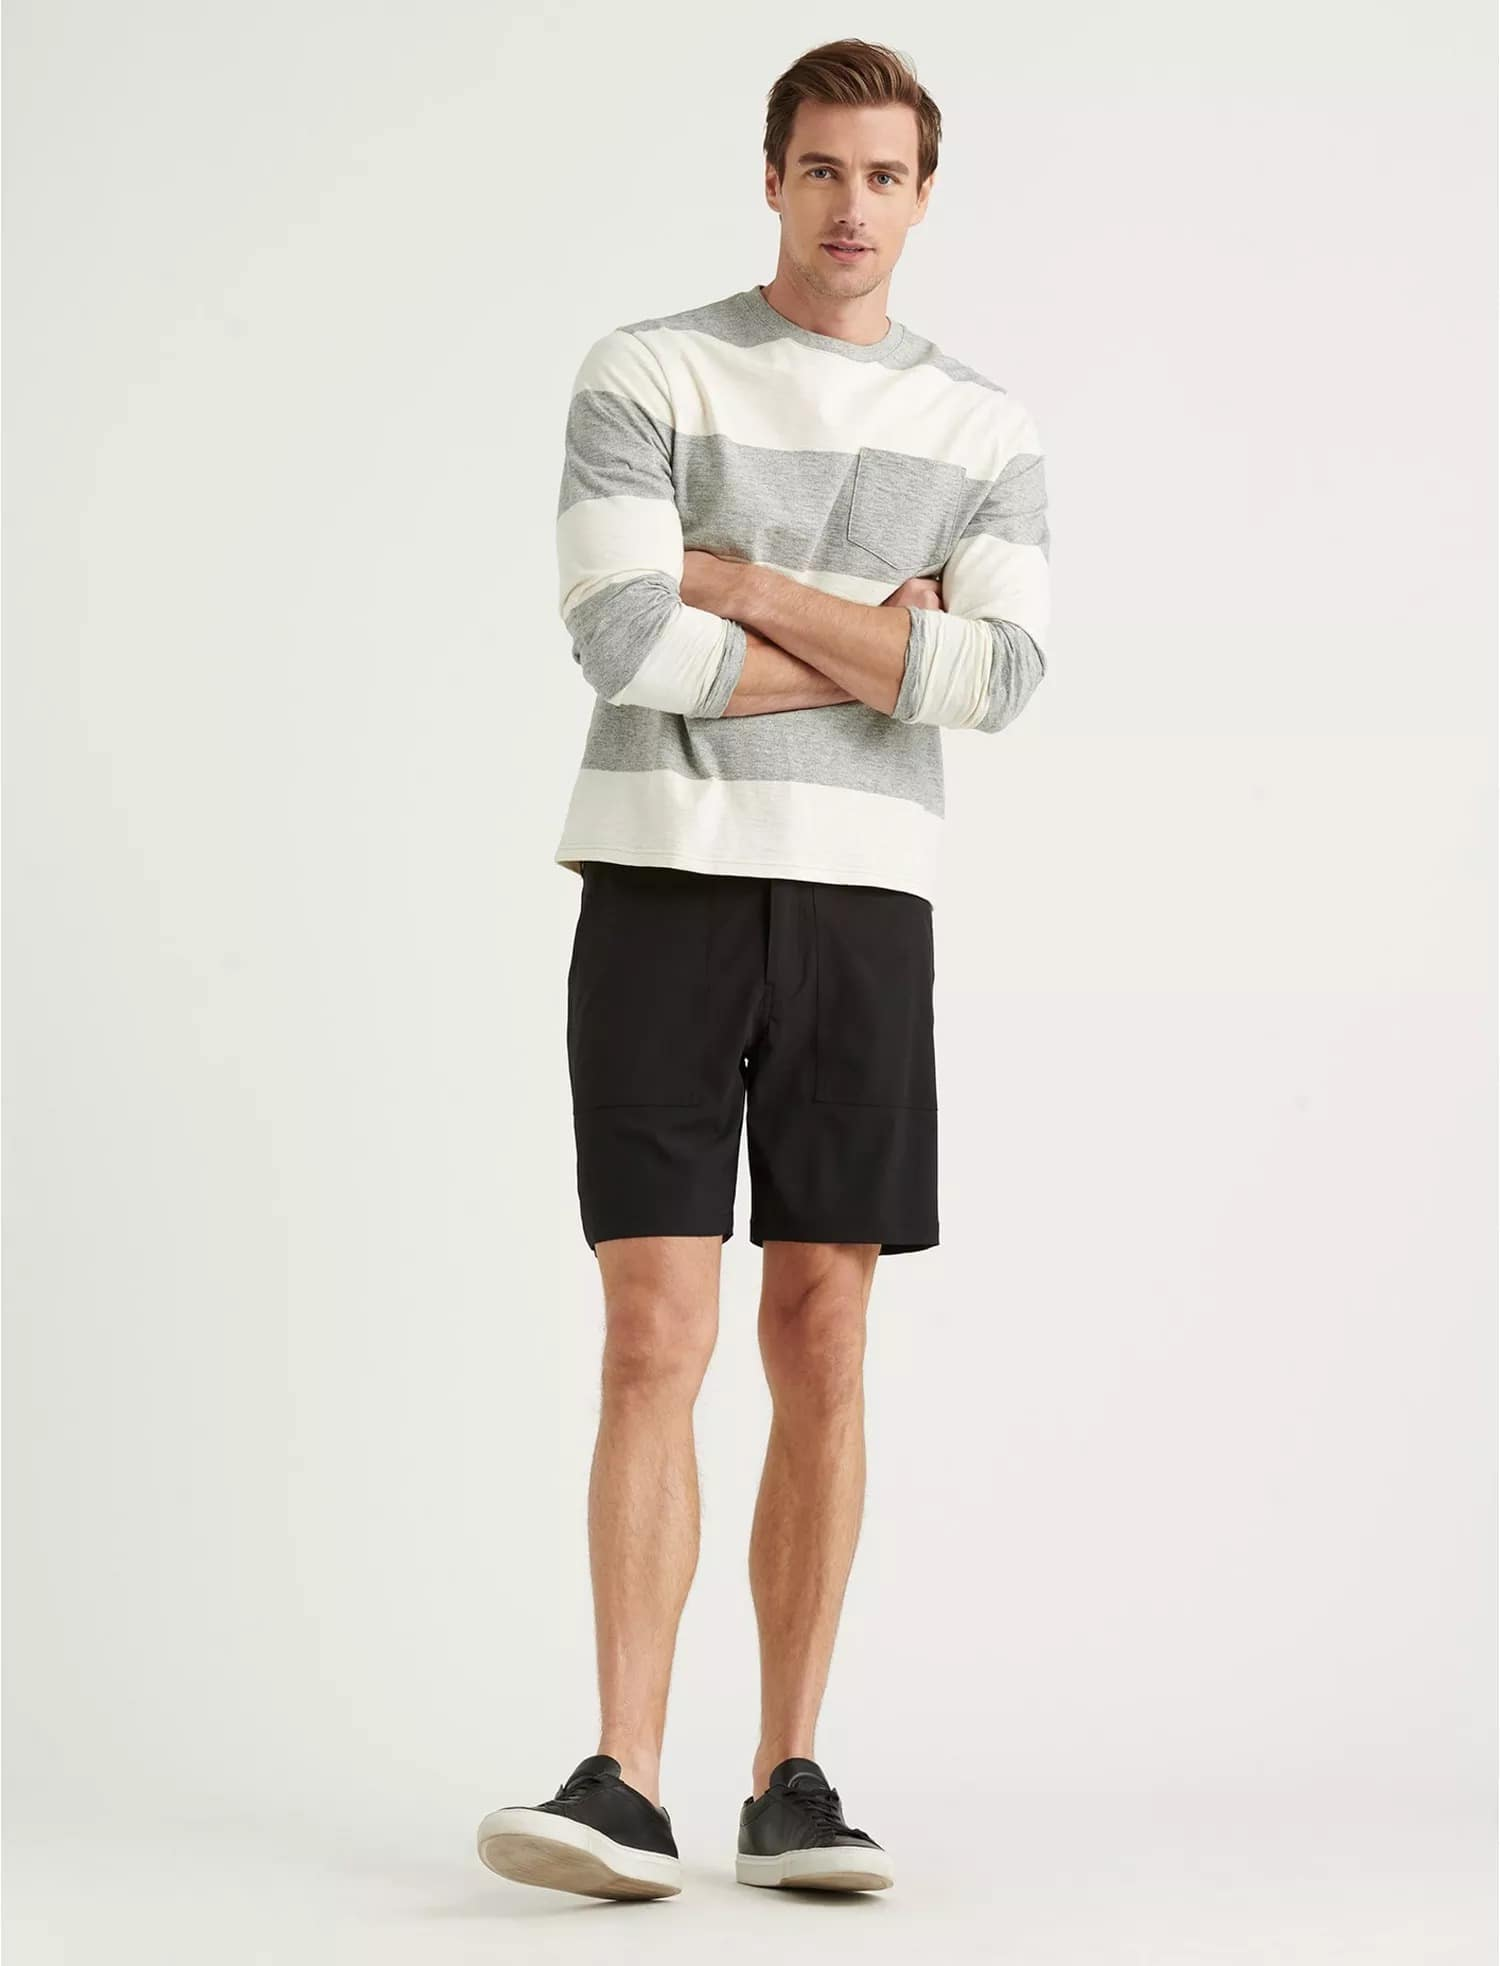 Lucky Brand Coupon: Additional $30 Off Orders $75+ + FS [e.g. prices before coupon Men's Surf Shorts $15, Women's Mid Rise Sienna Slim Boyfriend Jean $30]